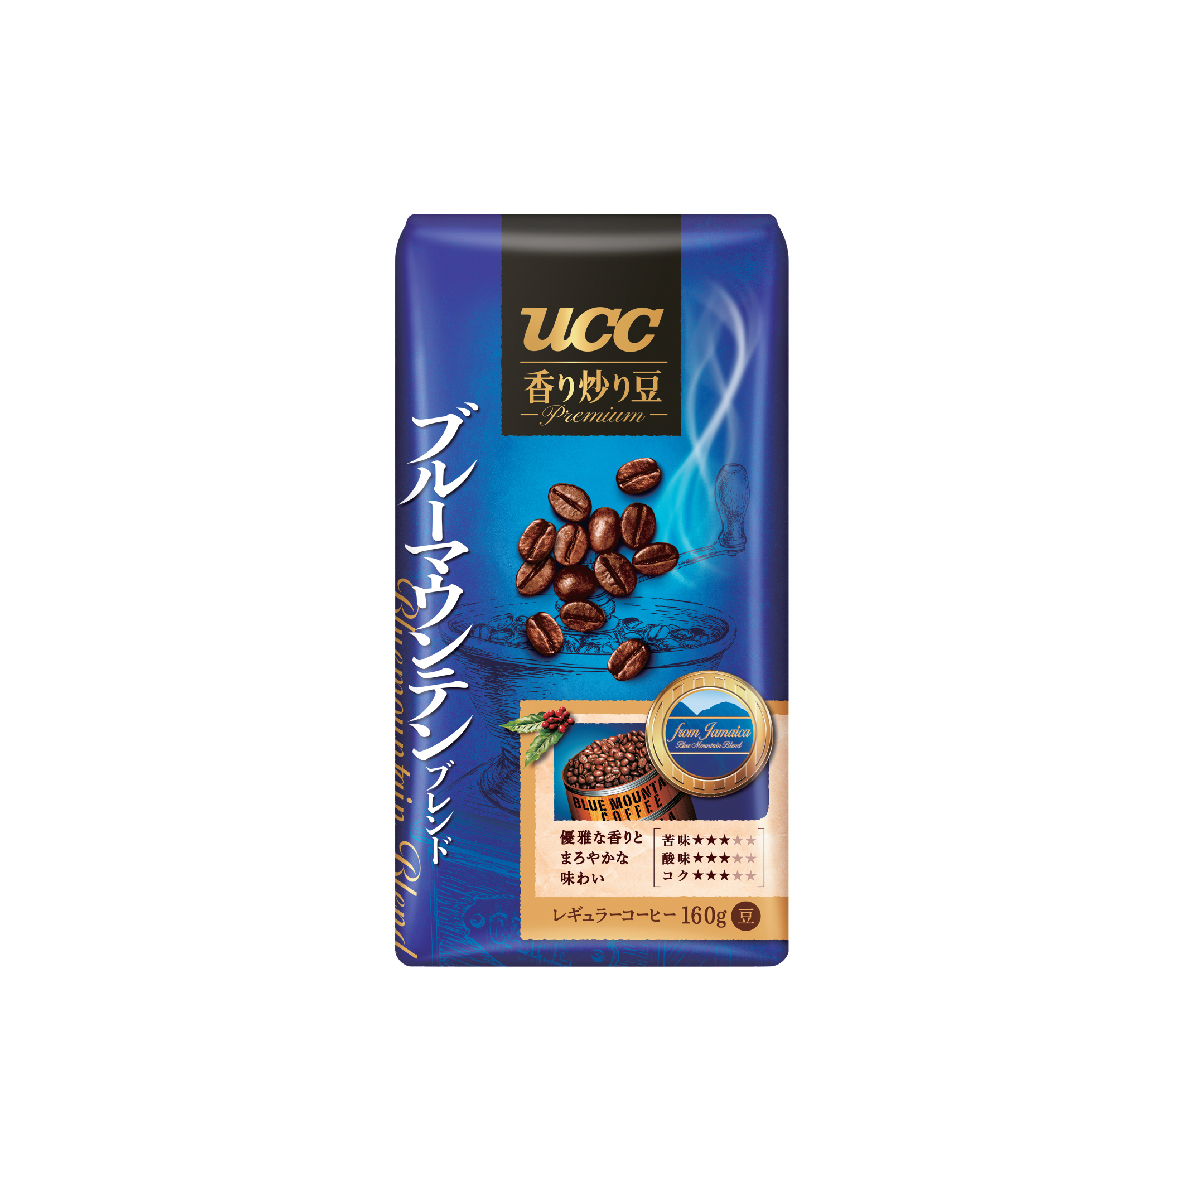 UCC Blue Mountain Blend Roasted Coffee Beans